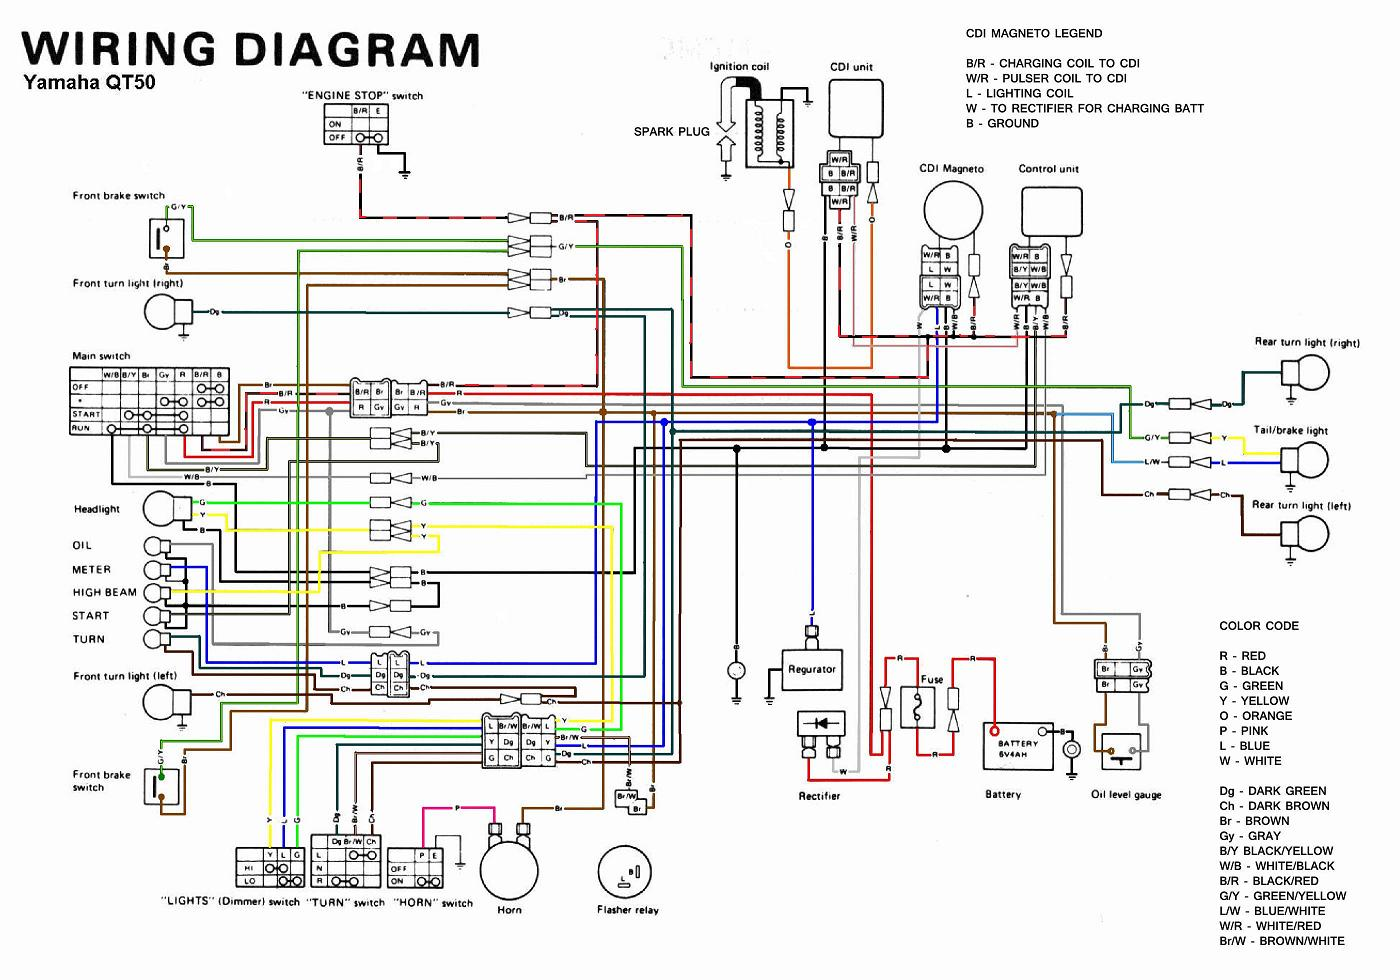 Yamaha QT50 Wiring Diagram yamaha qt50 wiring diagram yamaha qt50 luvin and other nopeds wiring schematics at honlapkeszites.co